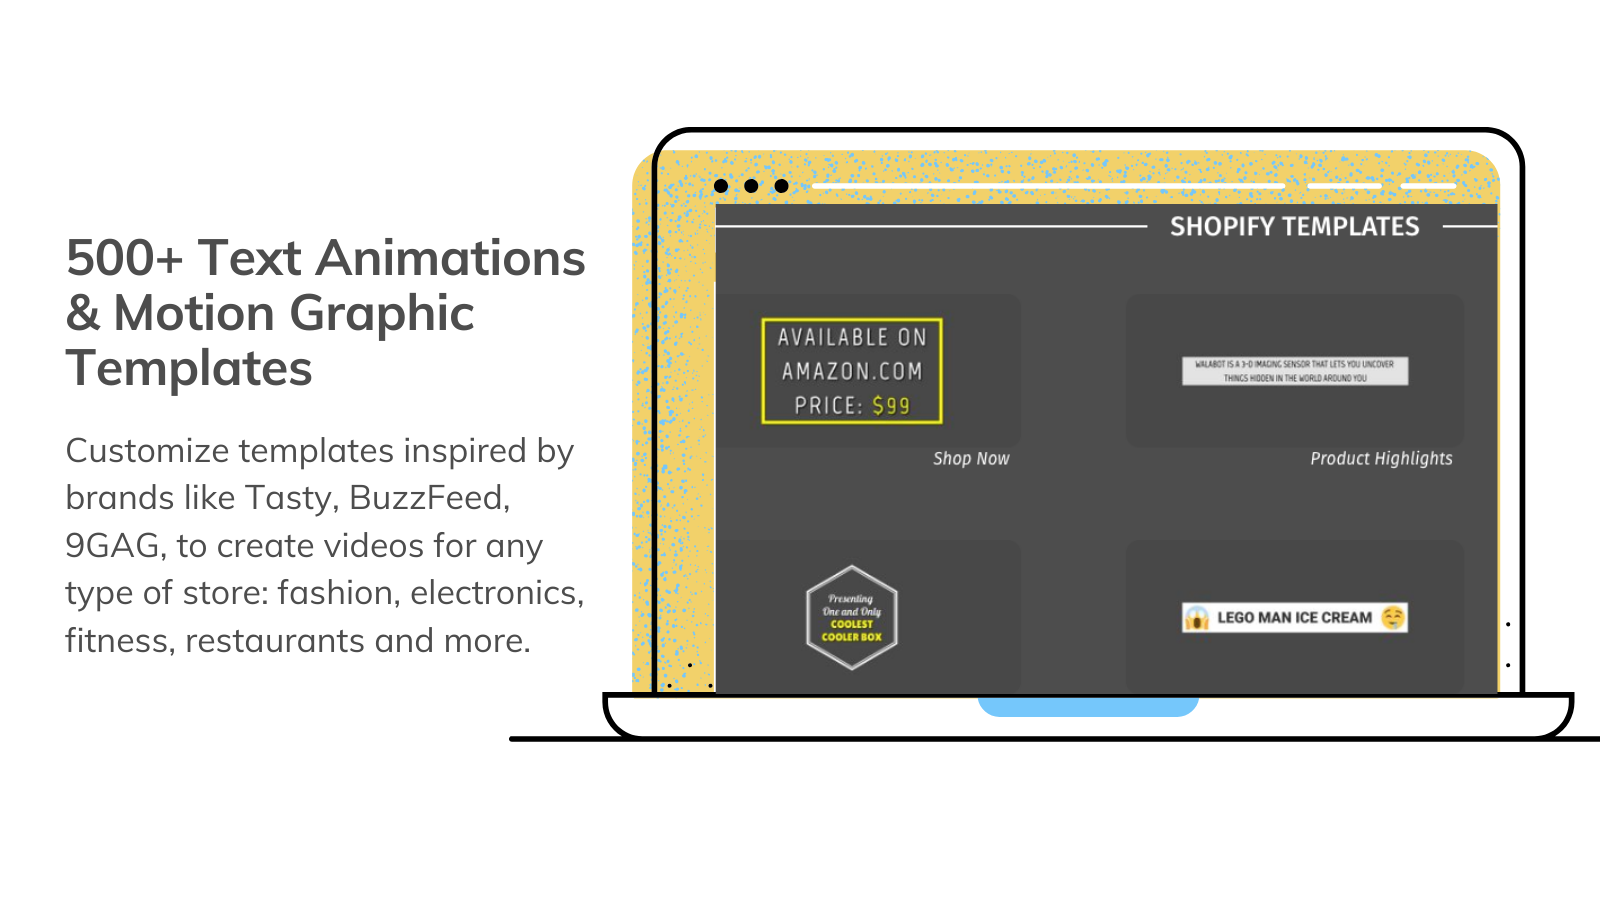 500+ motion graphic templates to create product videos and ads